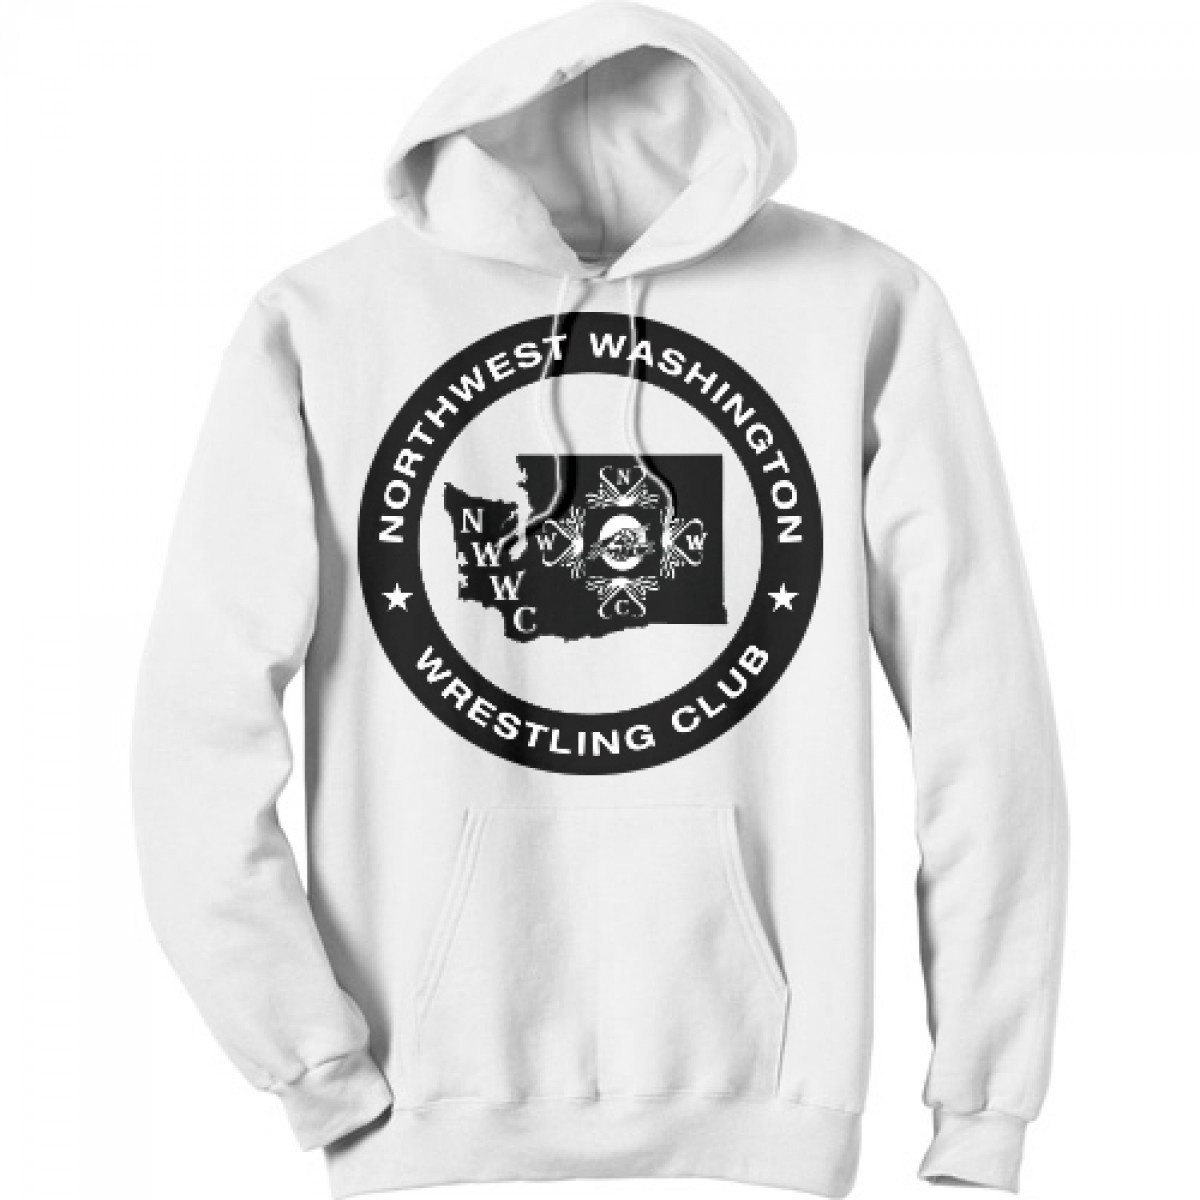 NWWC white hoodie with the main logo in black-White-3XL